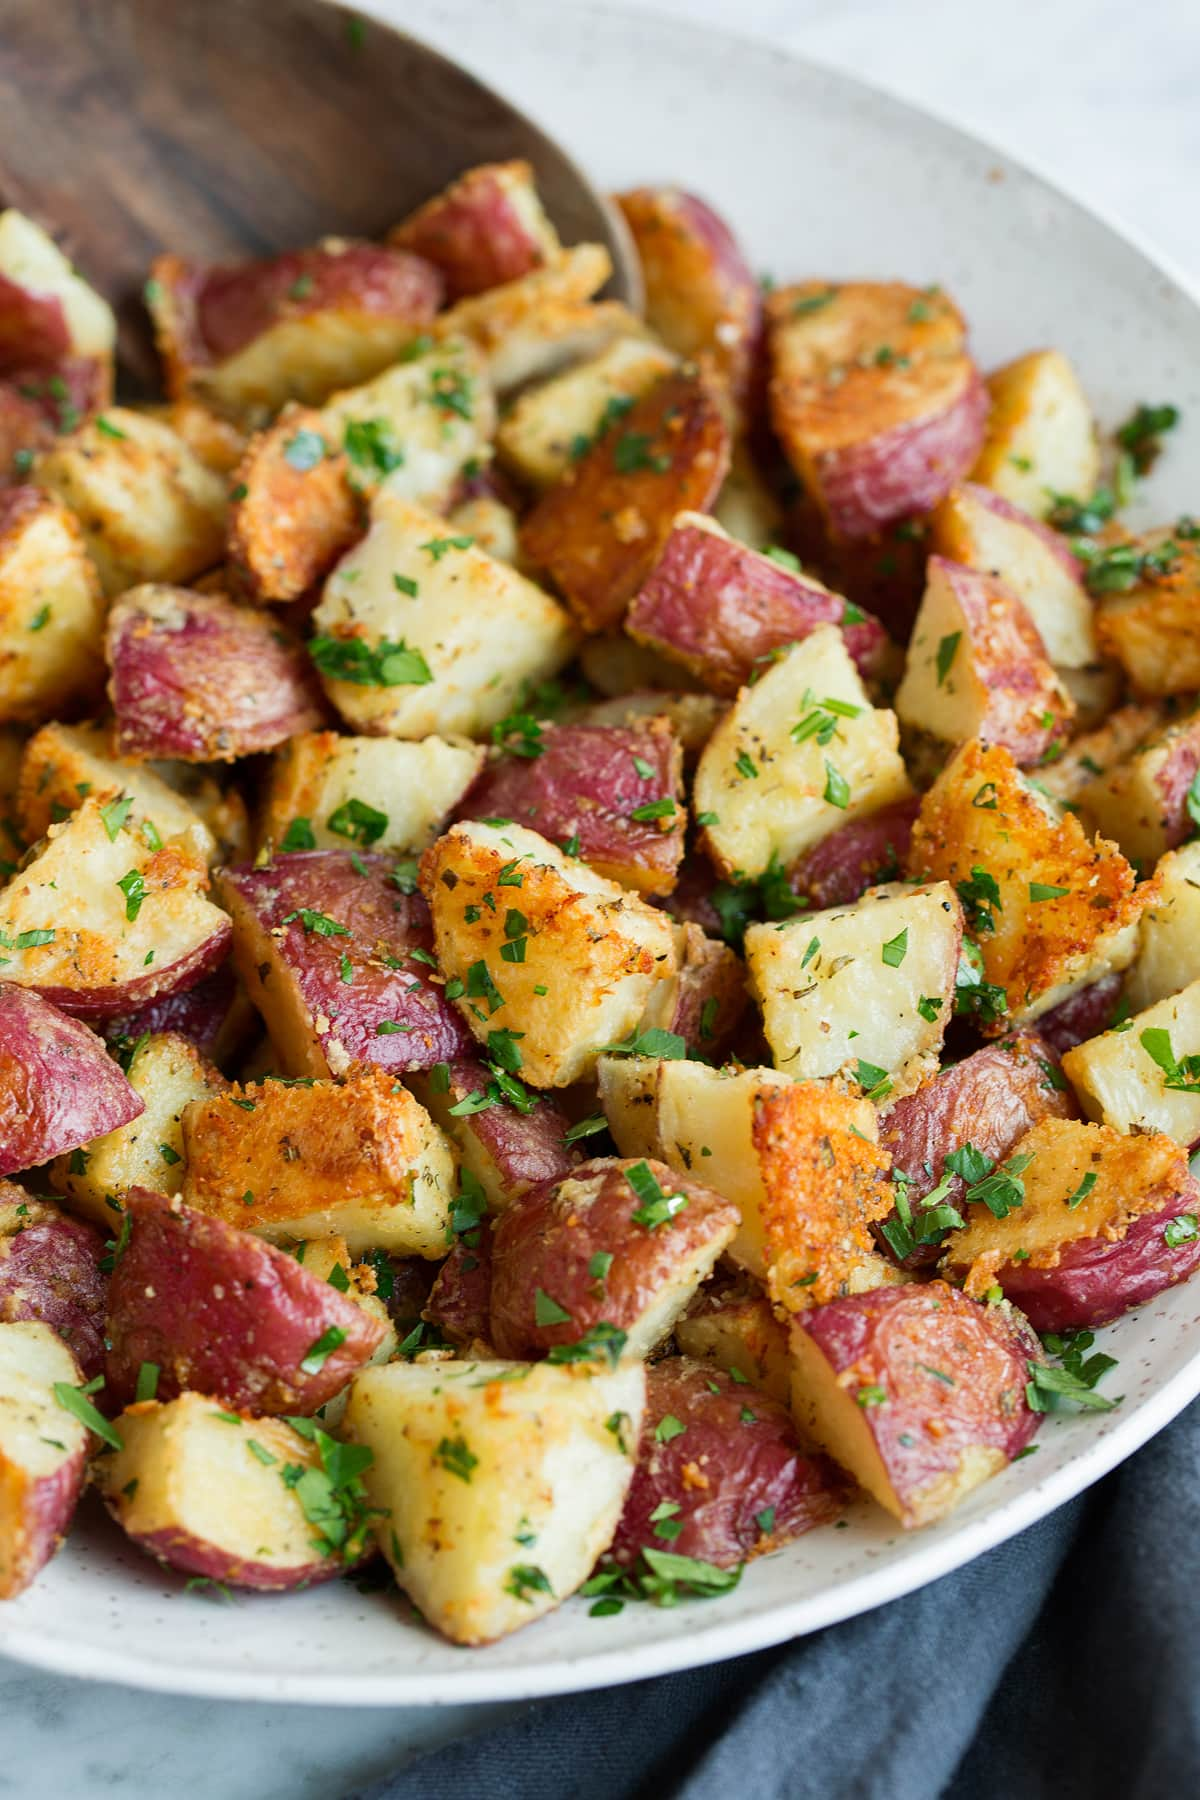 Looking for some easy thanksgiving recipes side dishes? This article has the best make-ahead thanksgiving side dishes whether you're looking for Veggies, milk, southern, salts, stuffing .#thanksgiving #holiday #recipes #my fav is #6